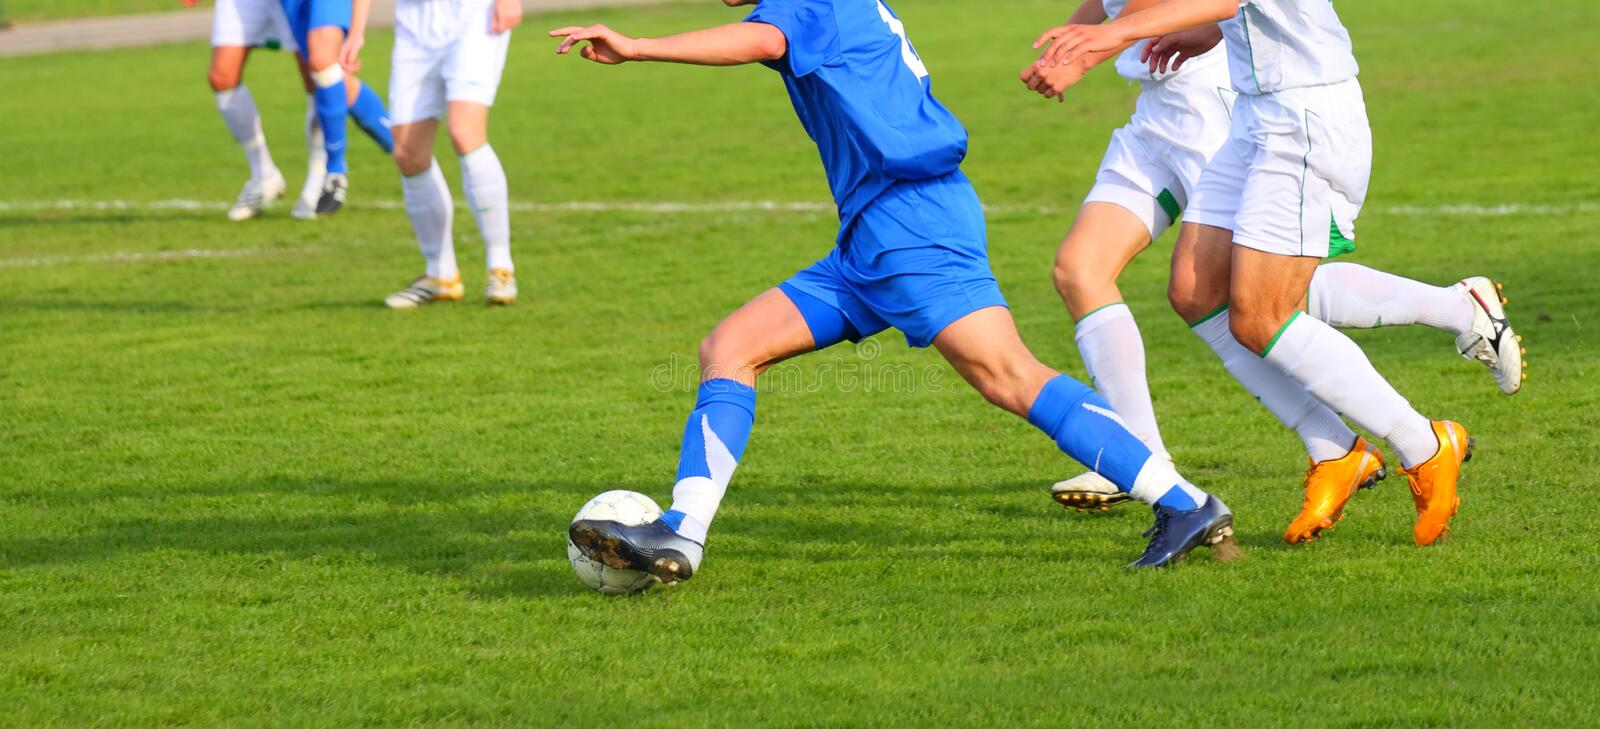 Download Soccer competition stock image. Image of outdoors, green - 6333481